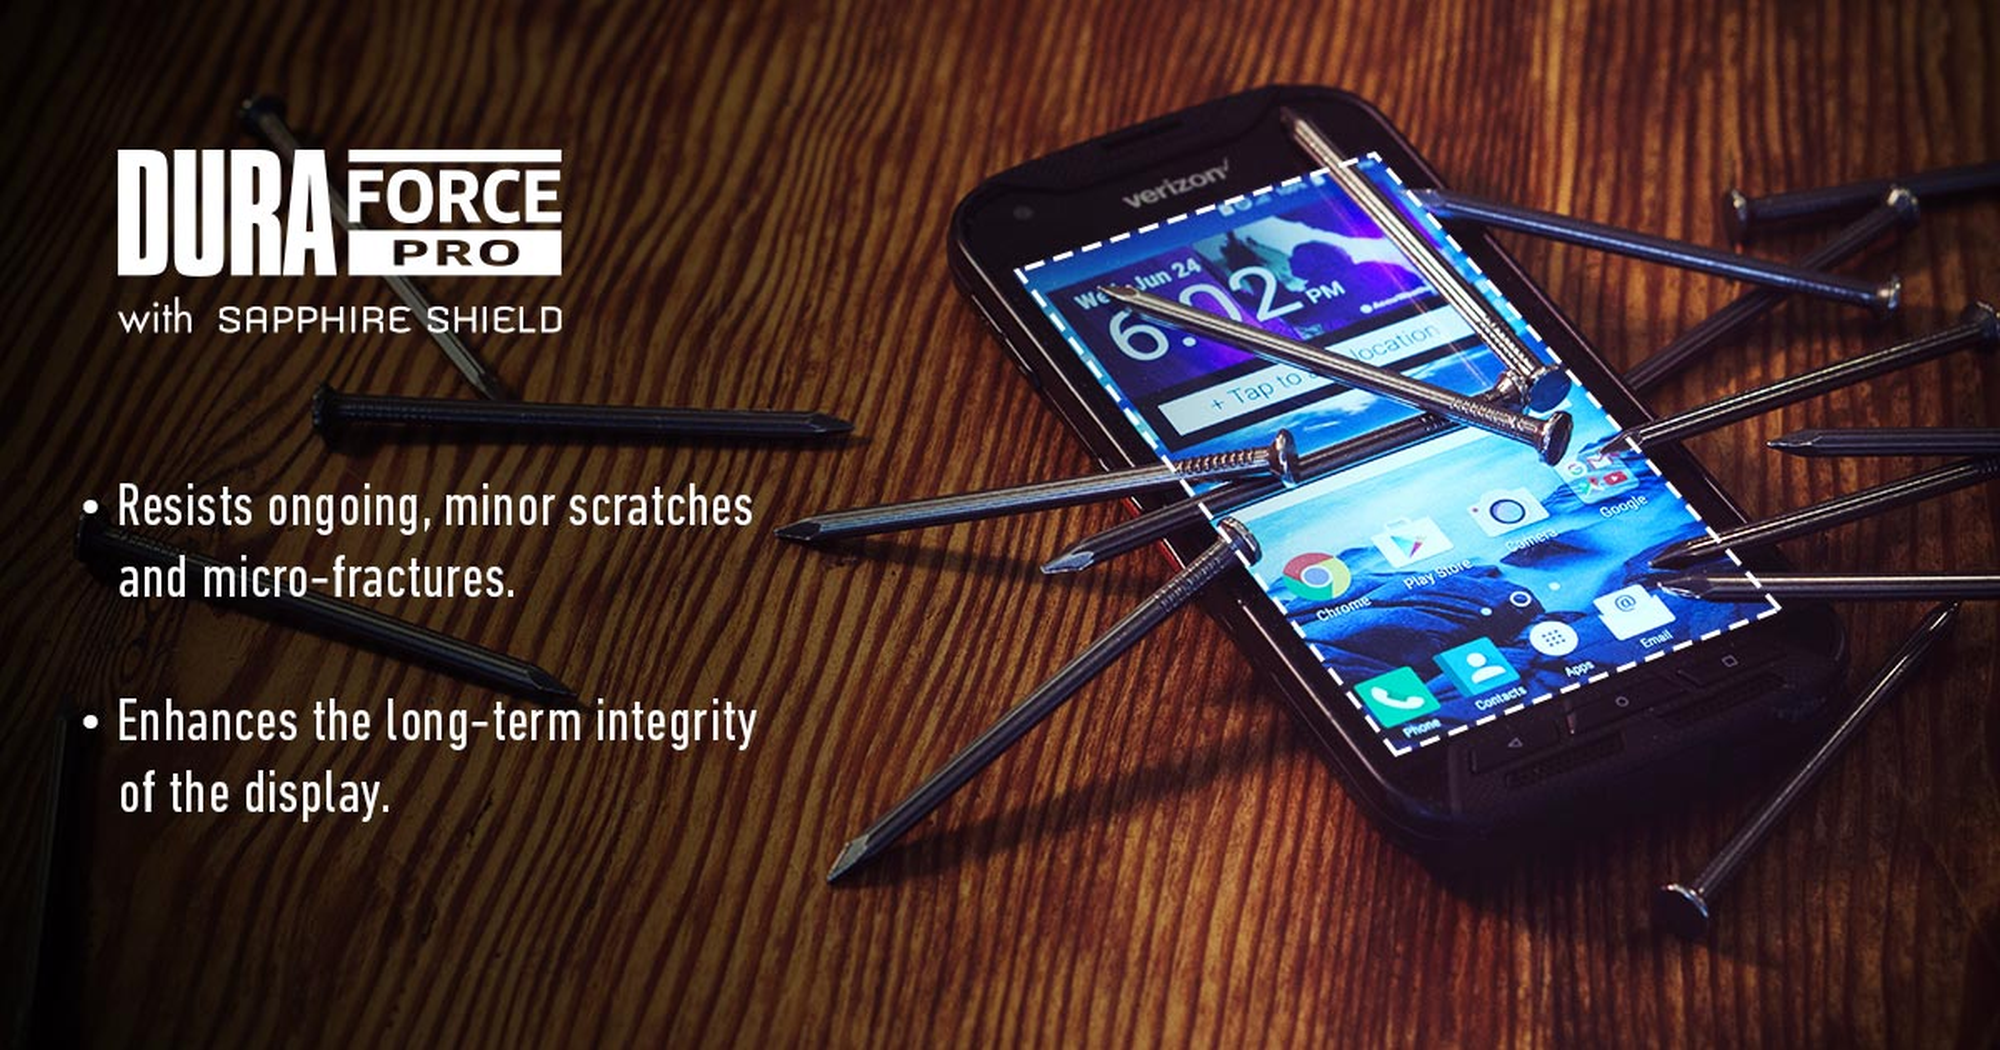 Verizon's Kyocera DuraForce Pro 2: All you need to know